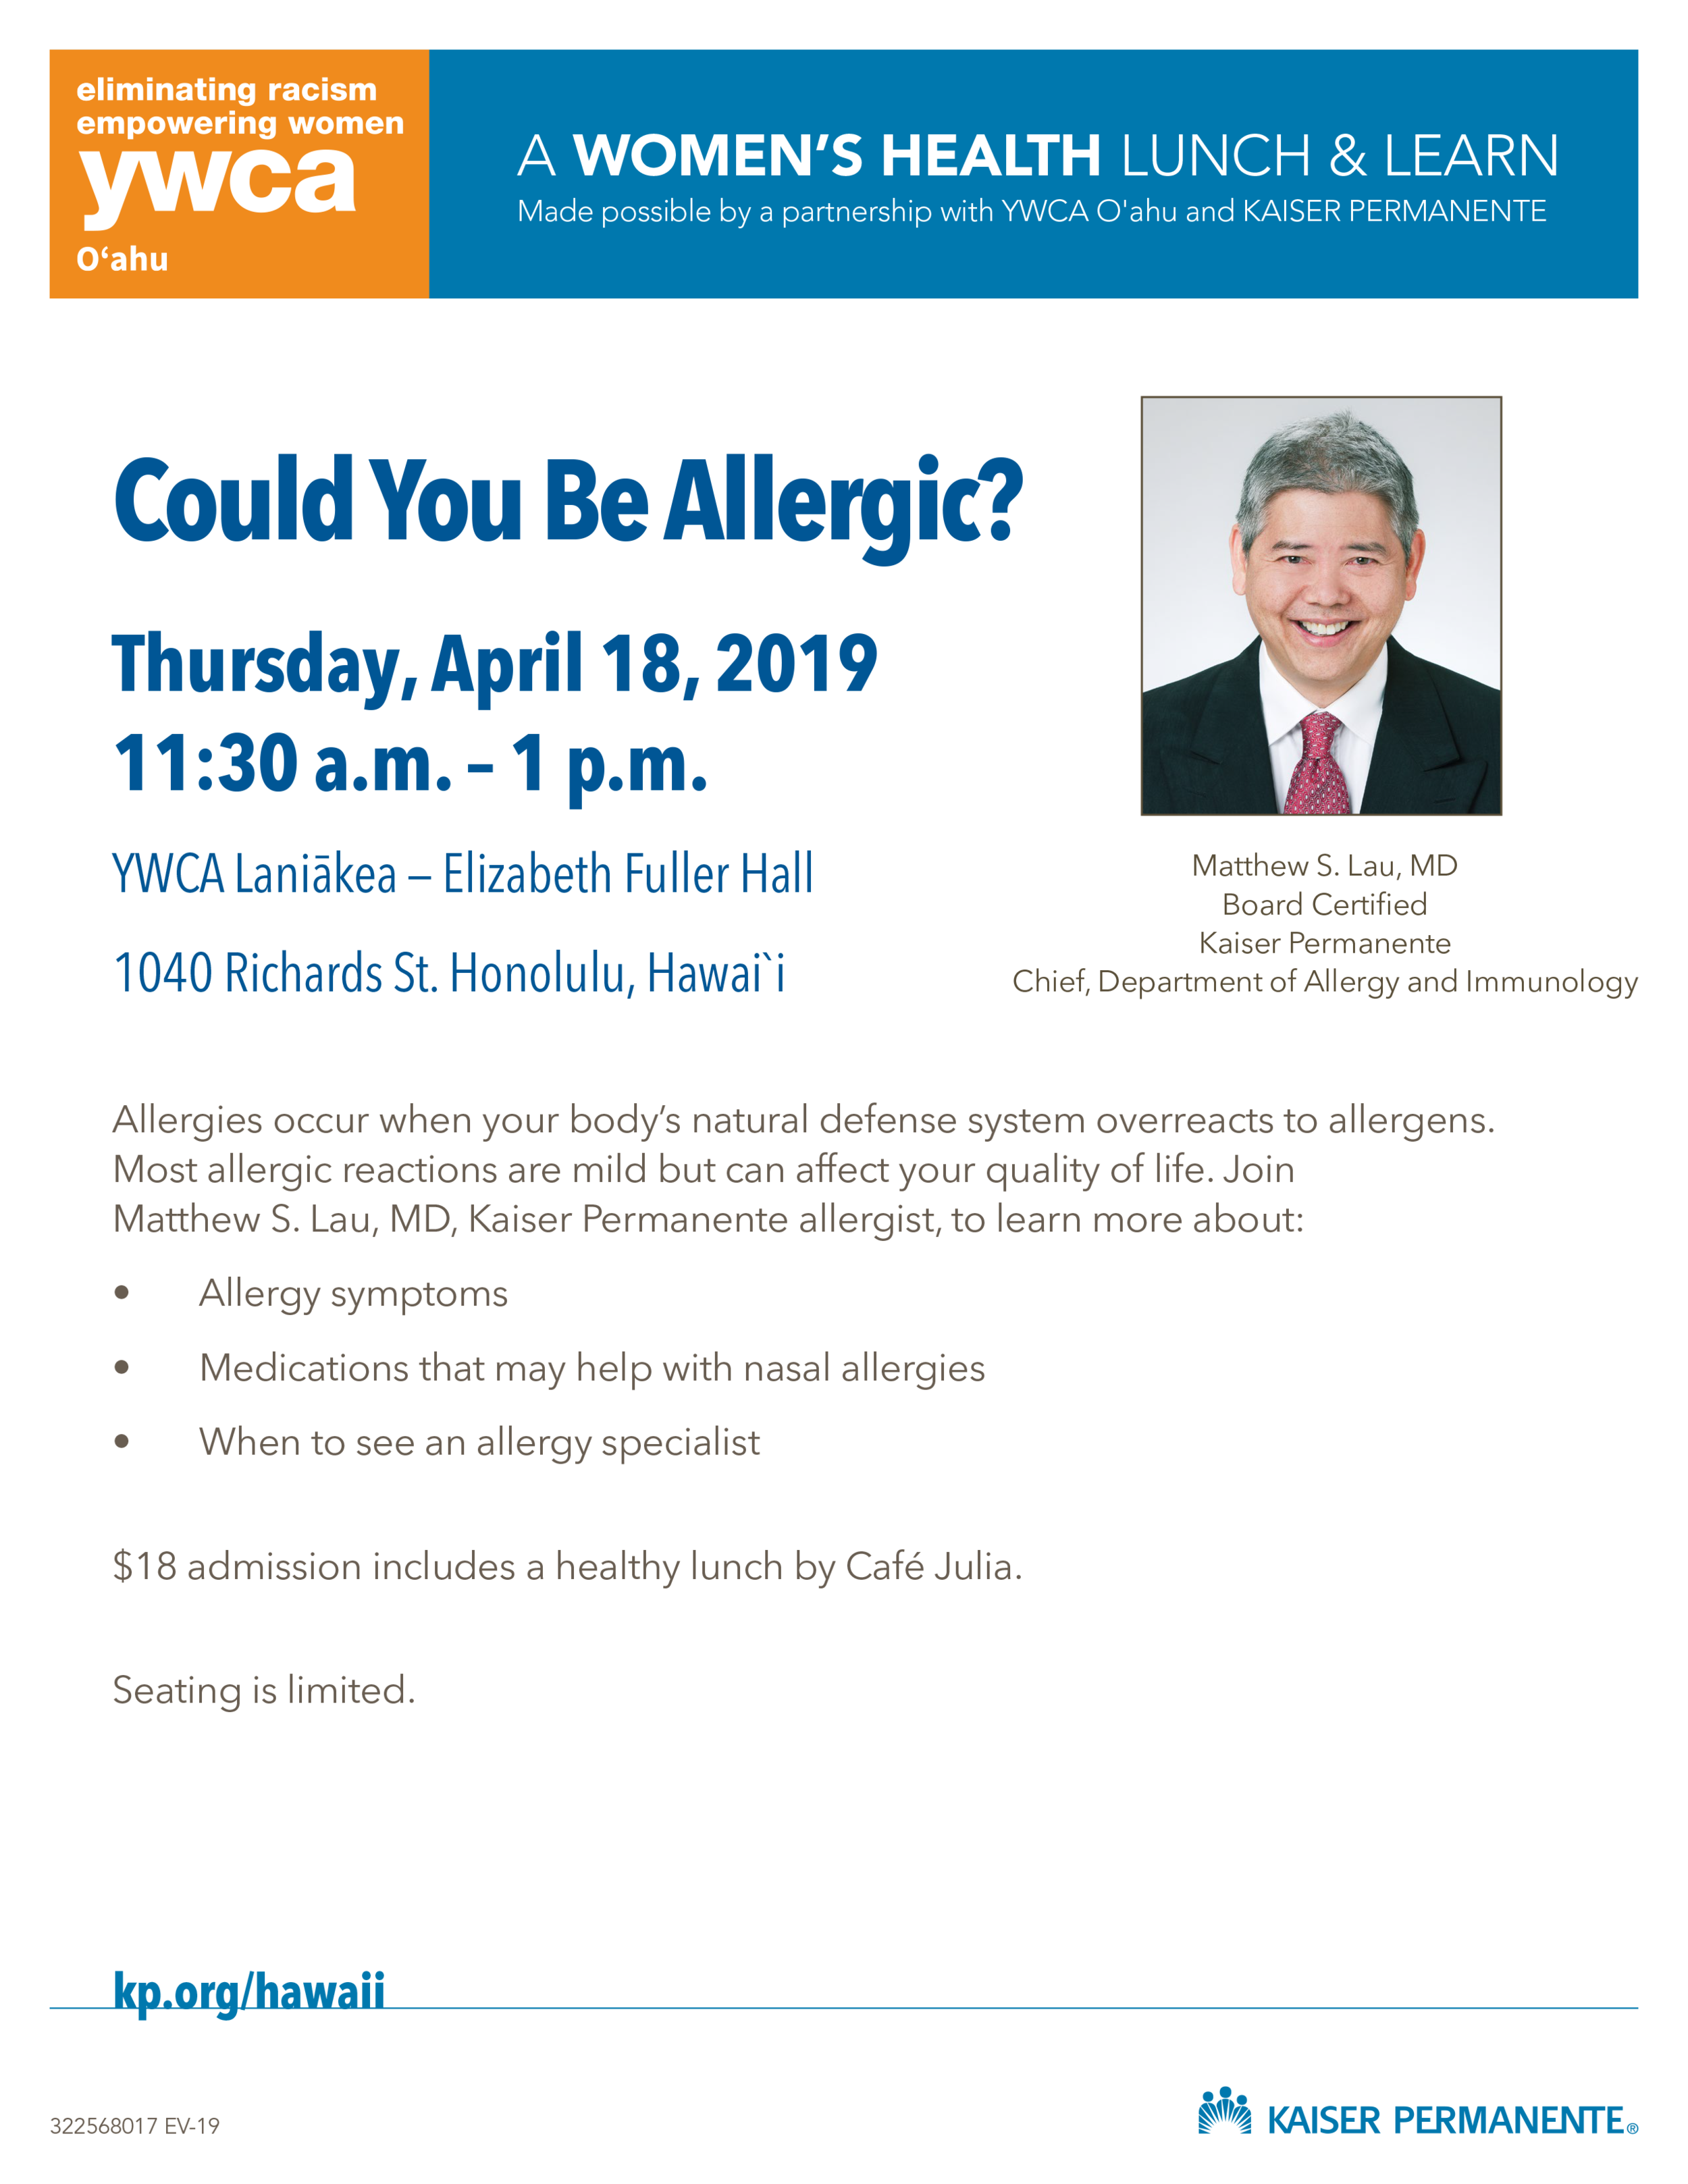 322568017 EV-19 YWCA Lunch & Learn Promotional Flyer - Allergies_V4 - no website.png